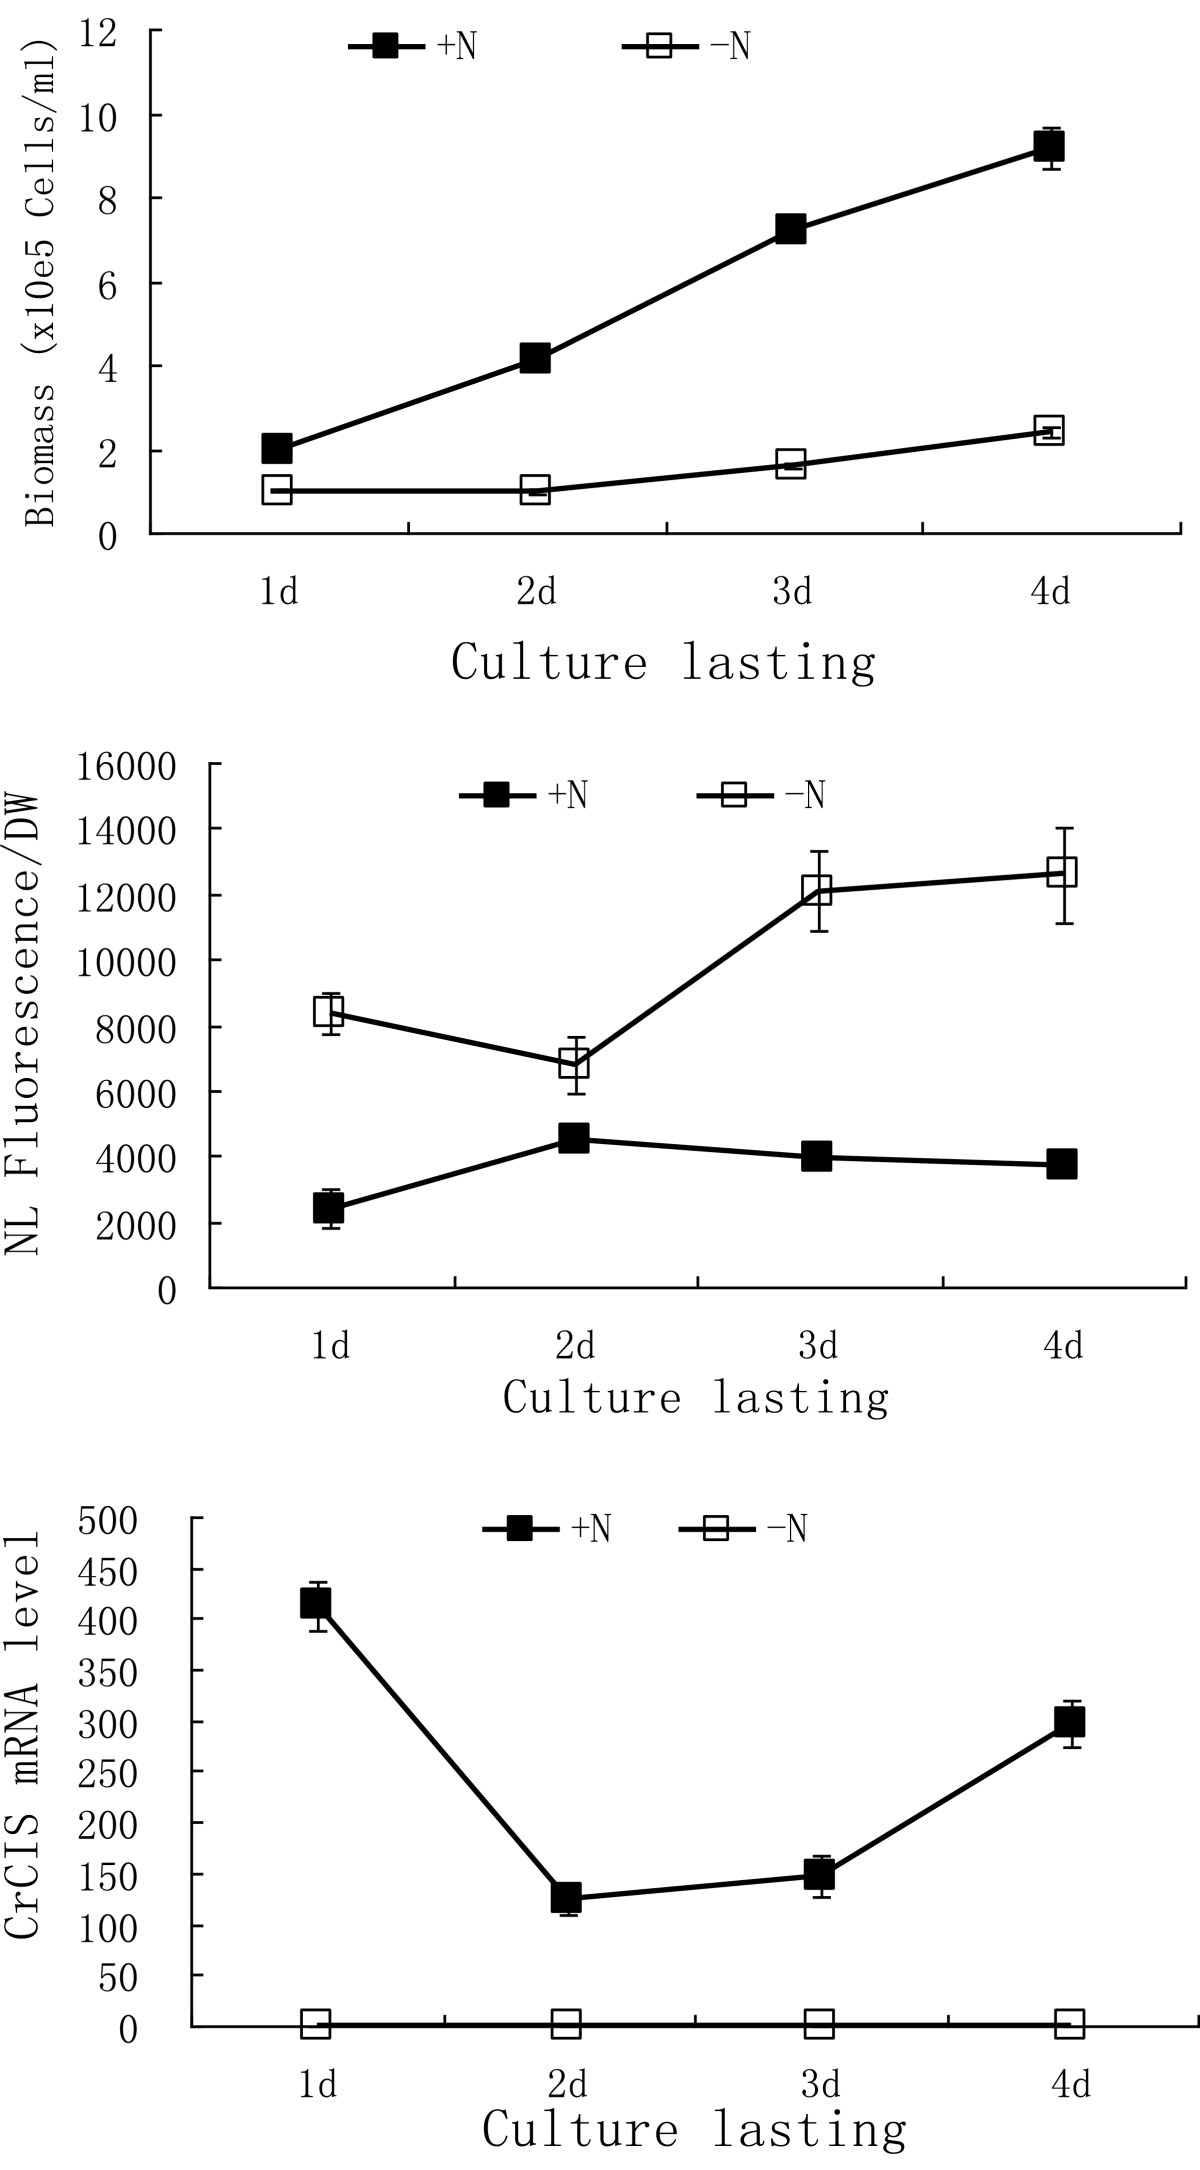 https://static-content.springer.com/image/art%3A10.1186%2F1471-2091-14-38/MediaObjects/12858_2013_Article_443_Fig2_HTML.jpg